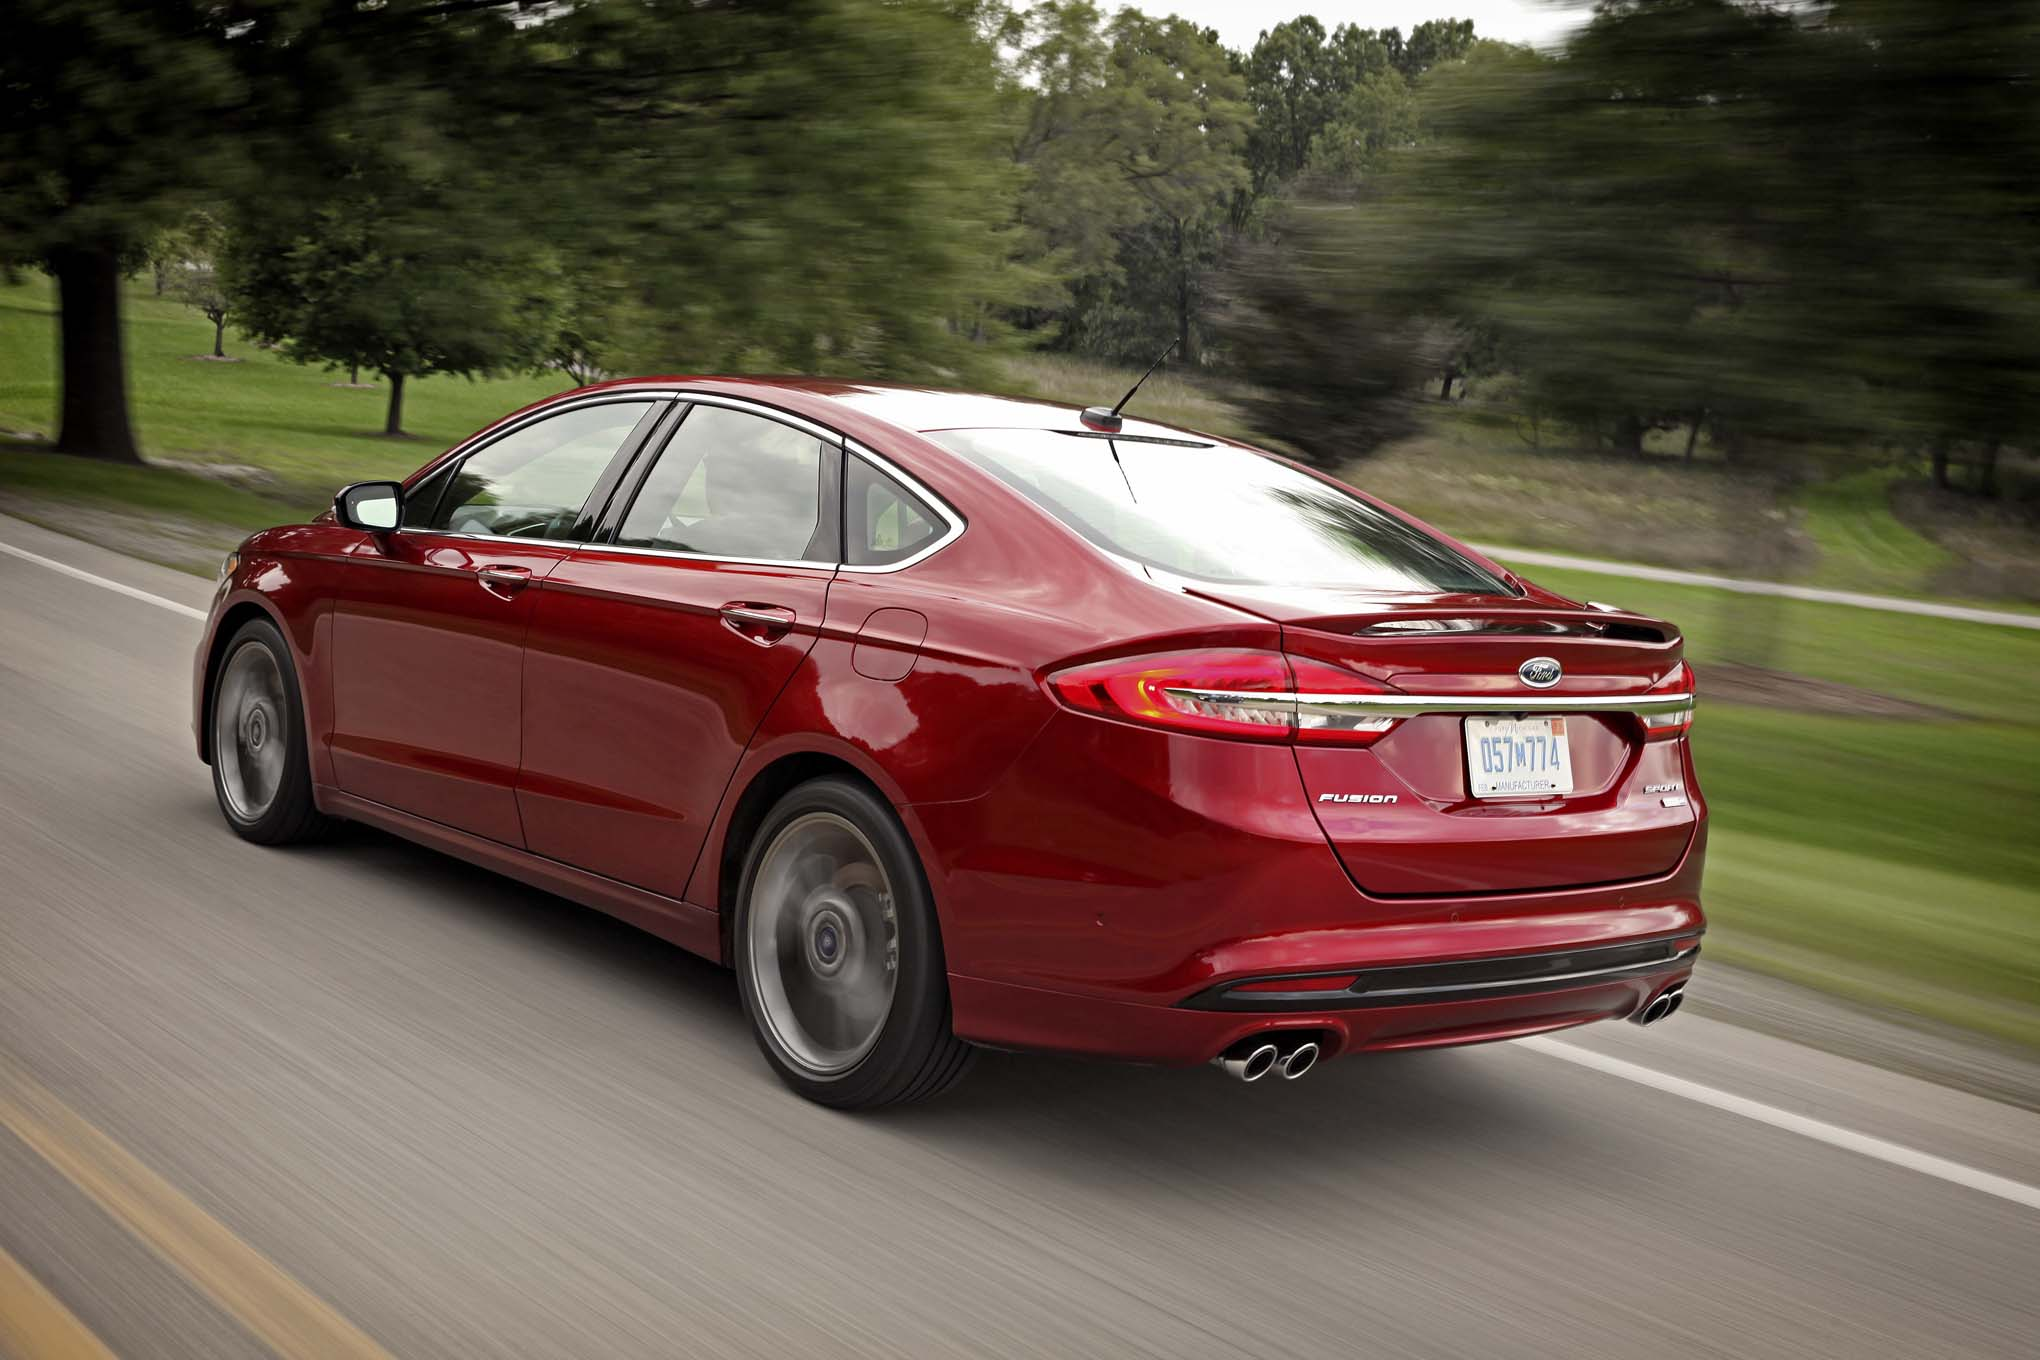 2017 Ford Fusion Sport rear three quarter in motion 2017 ford fusion review 2016 ford fusion wiring diagram at fashall.co